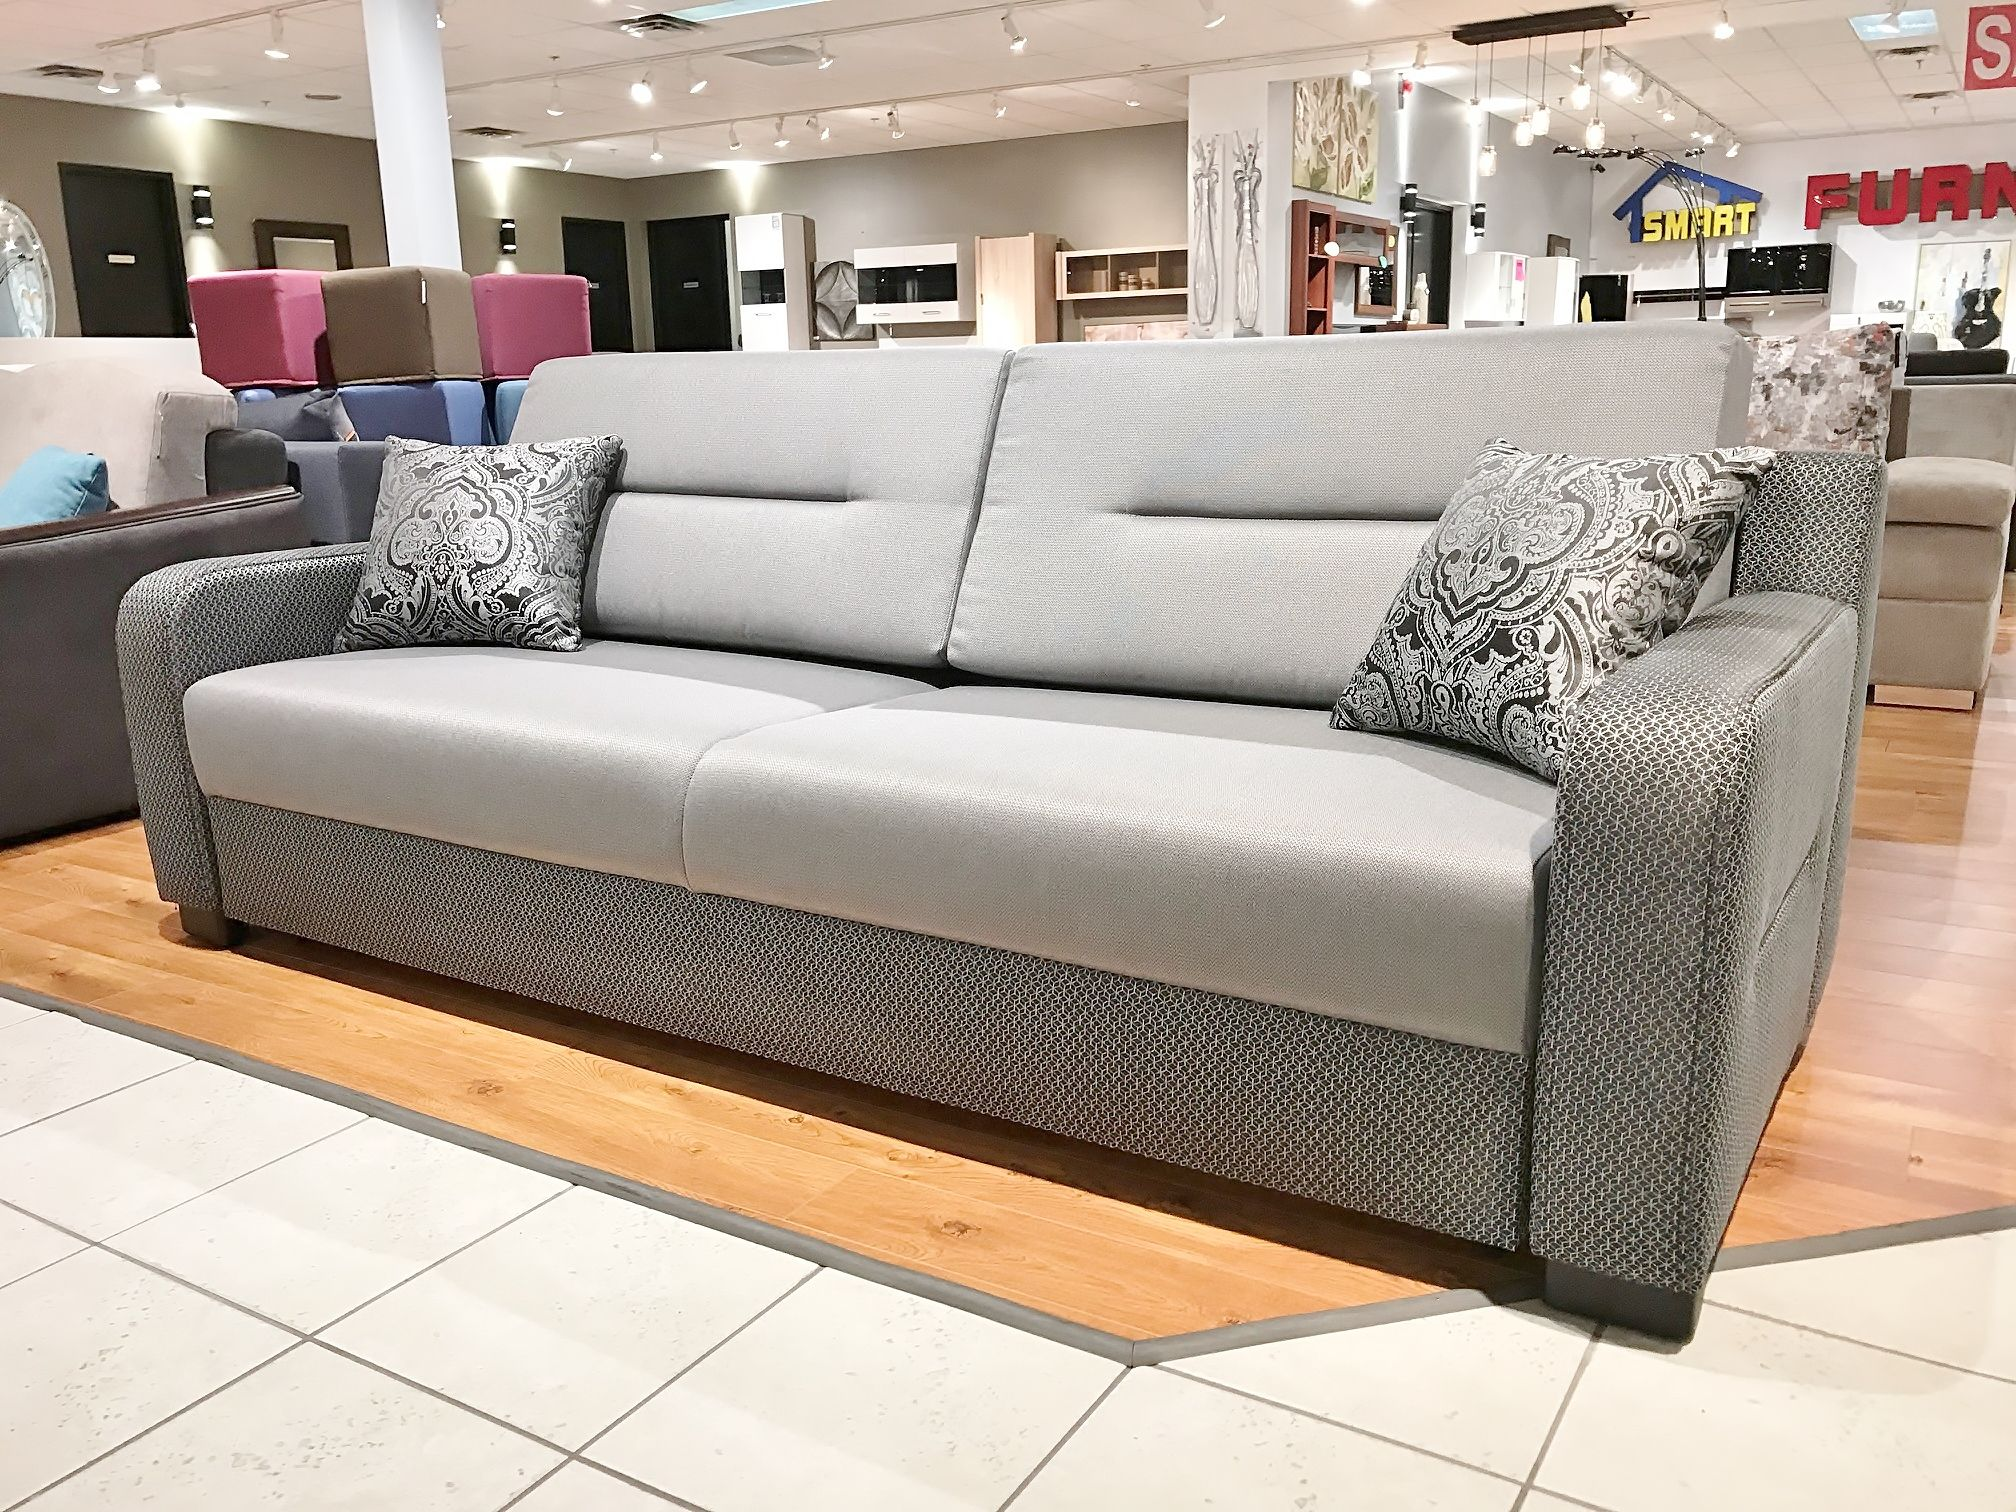 Pin by Smart Furniture on Furniture We Sell